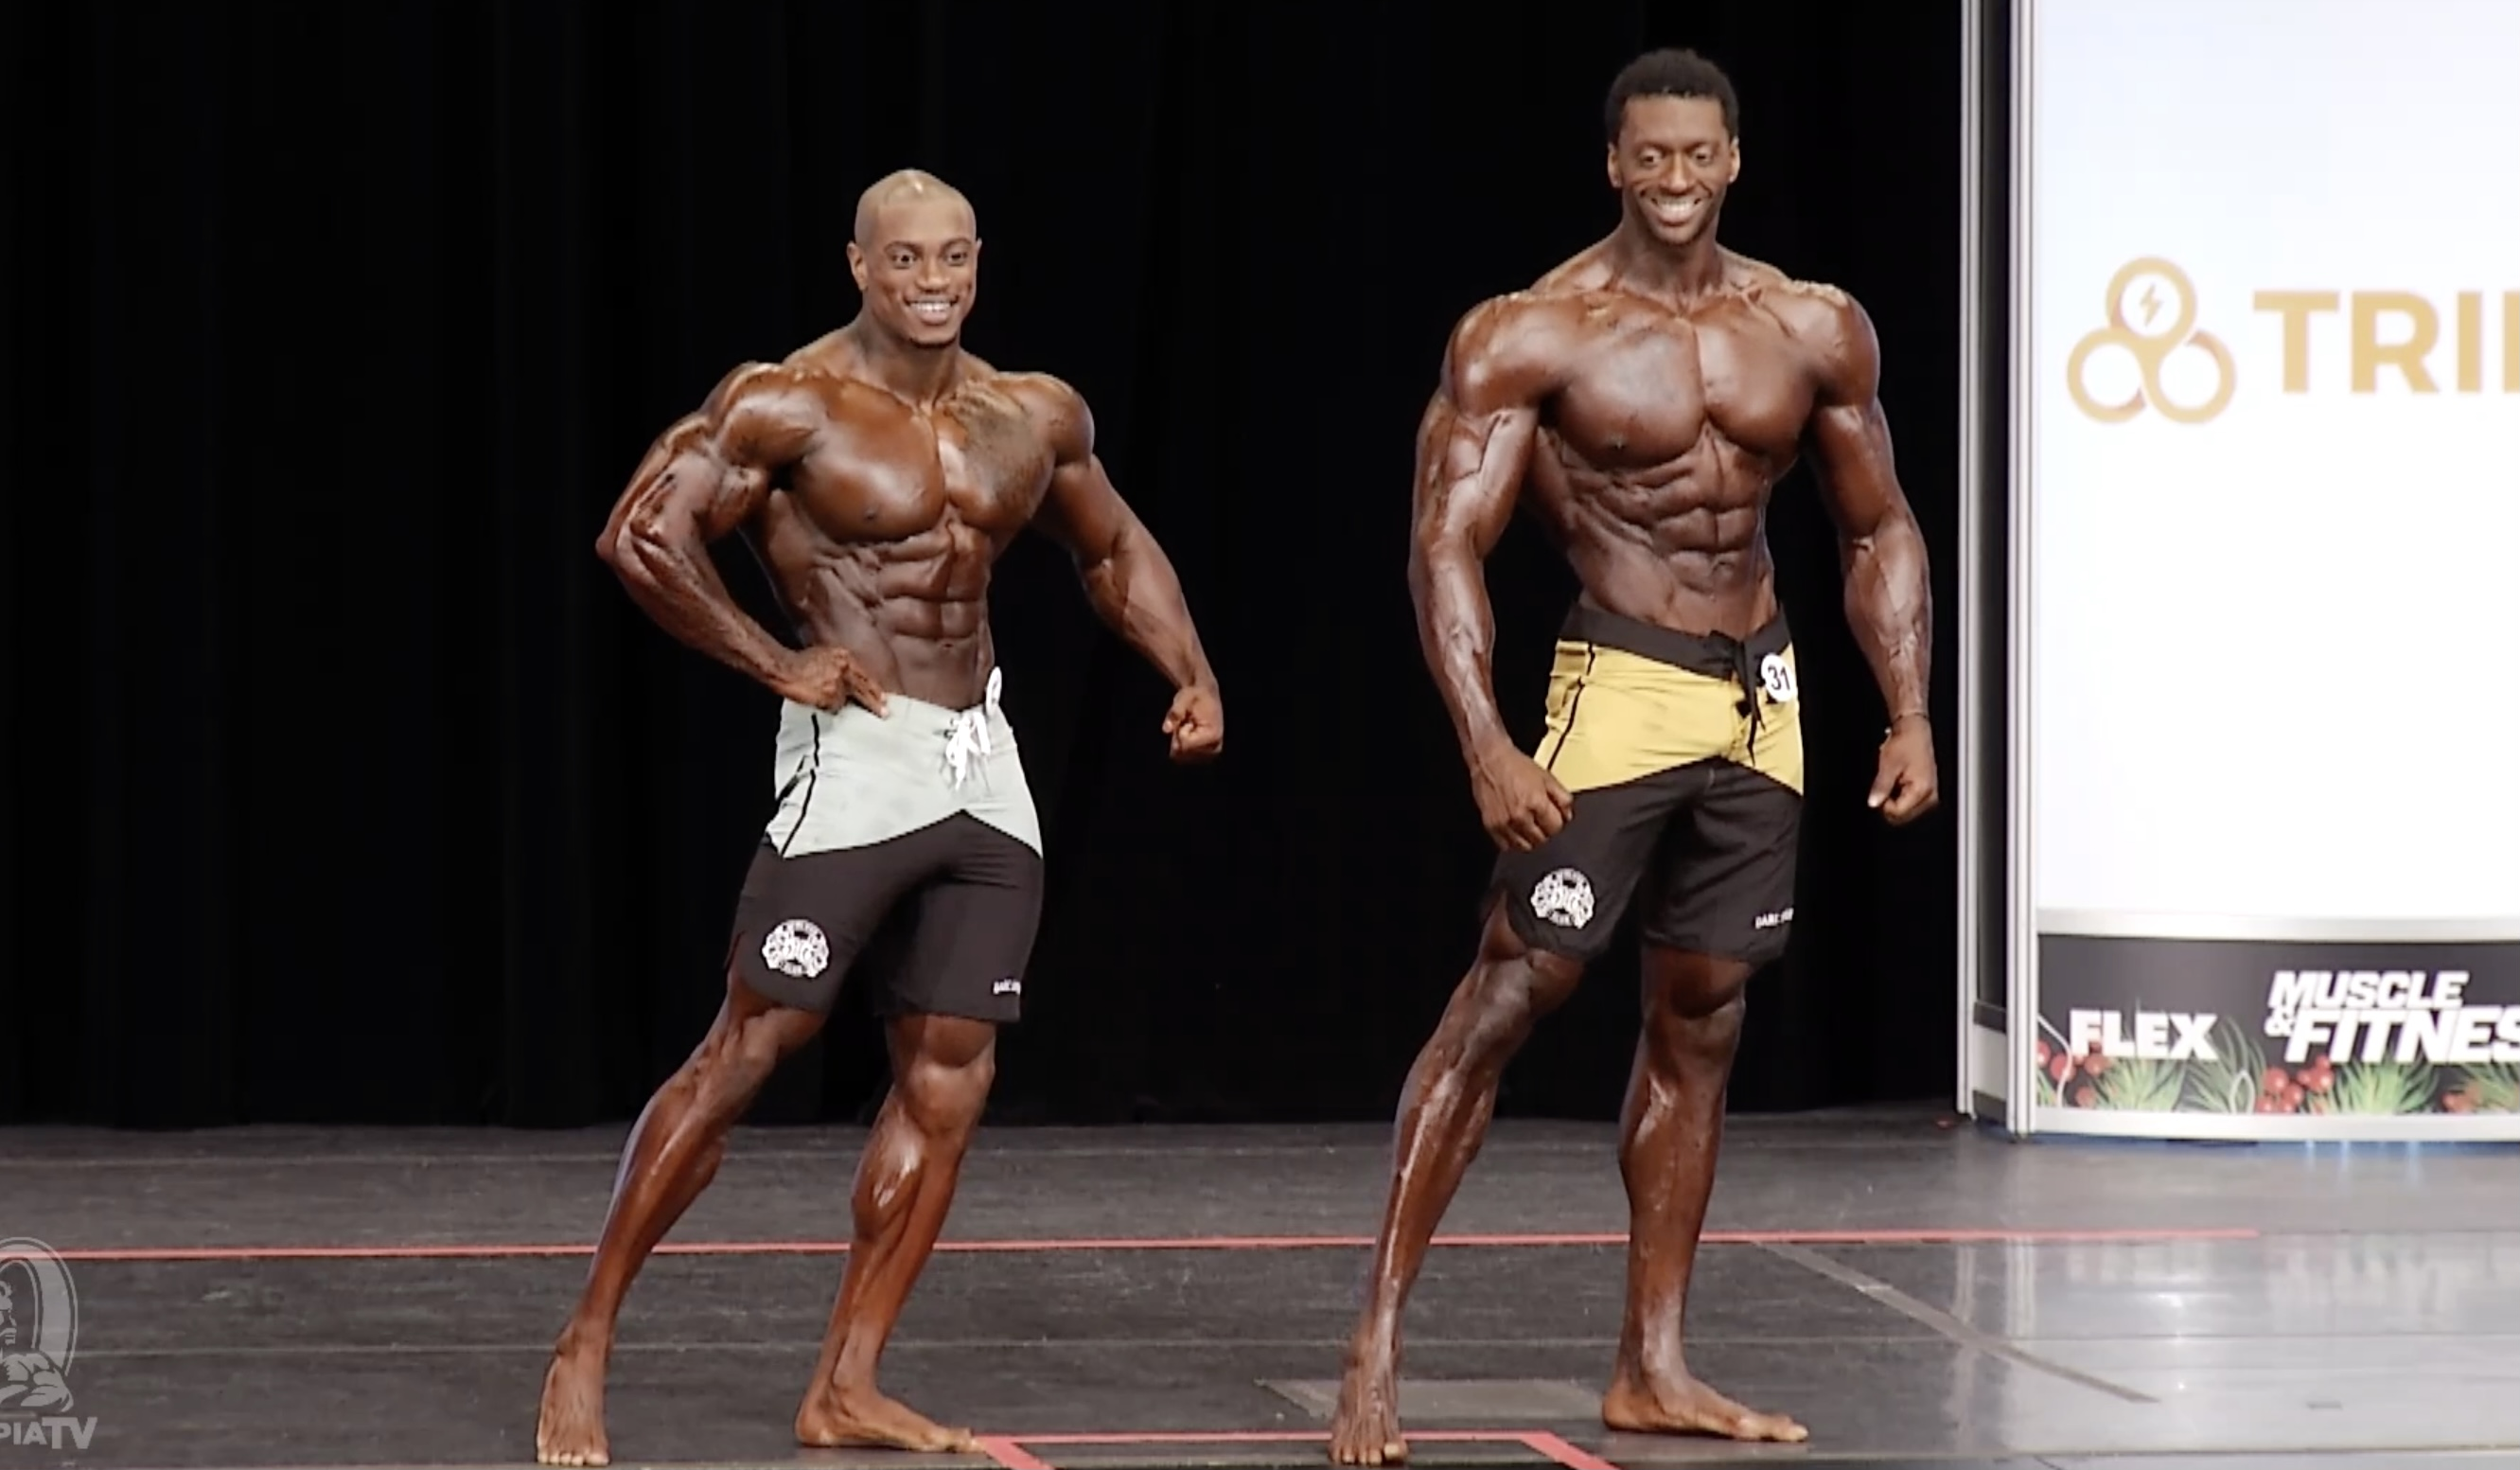 Olympia 2020 Men's Physique 8th callout